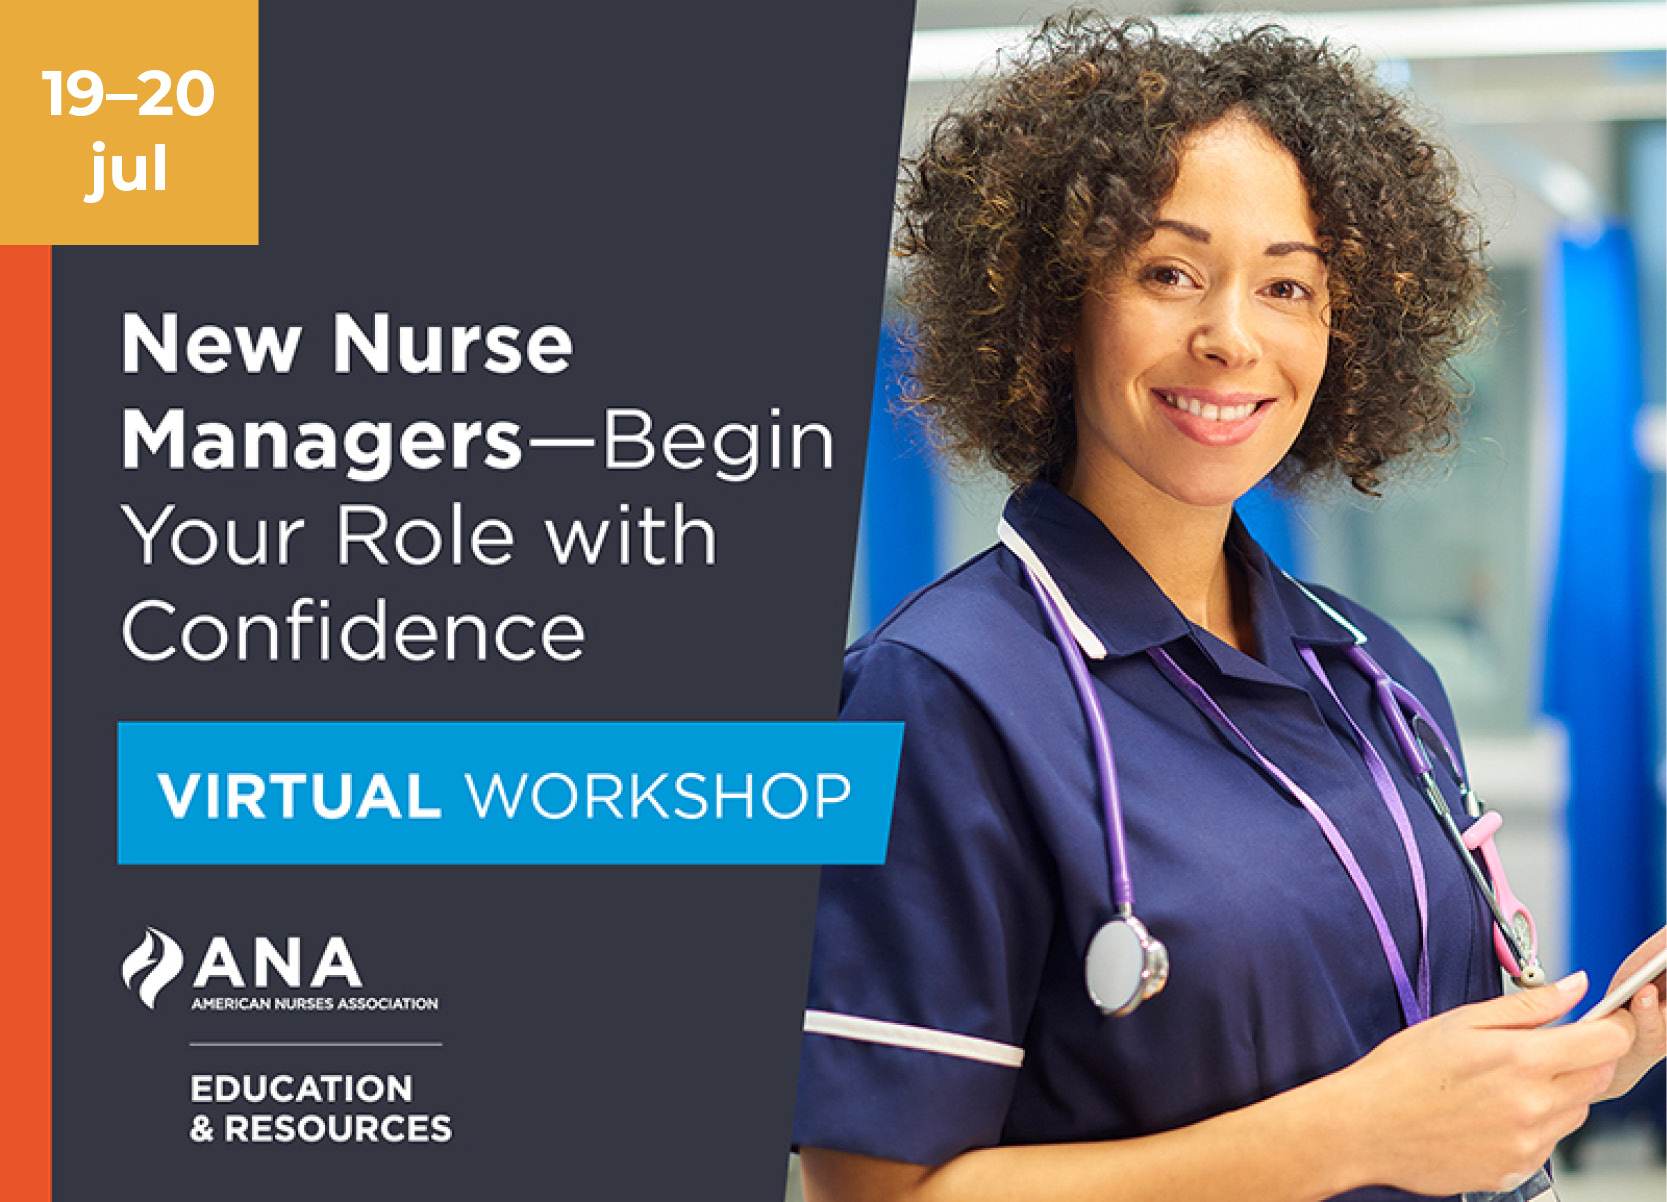 July 19–20. New Nurse Managers. Begin your role with confidence. Virtual Workshop. American Nurses Association Education and Resources.